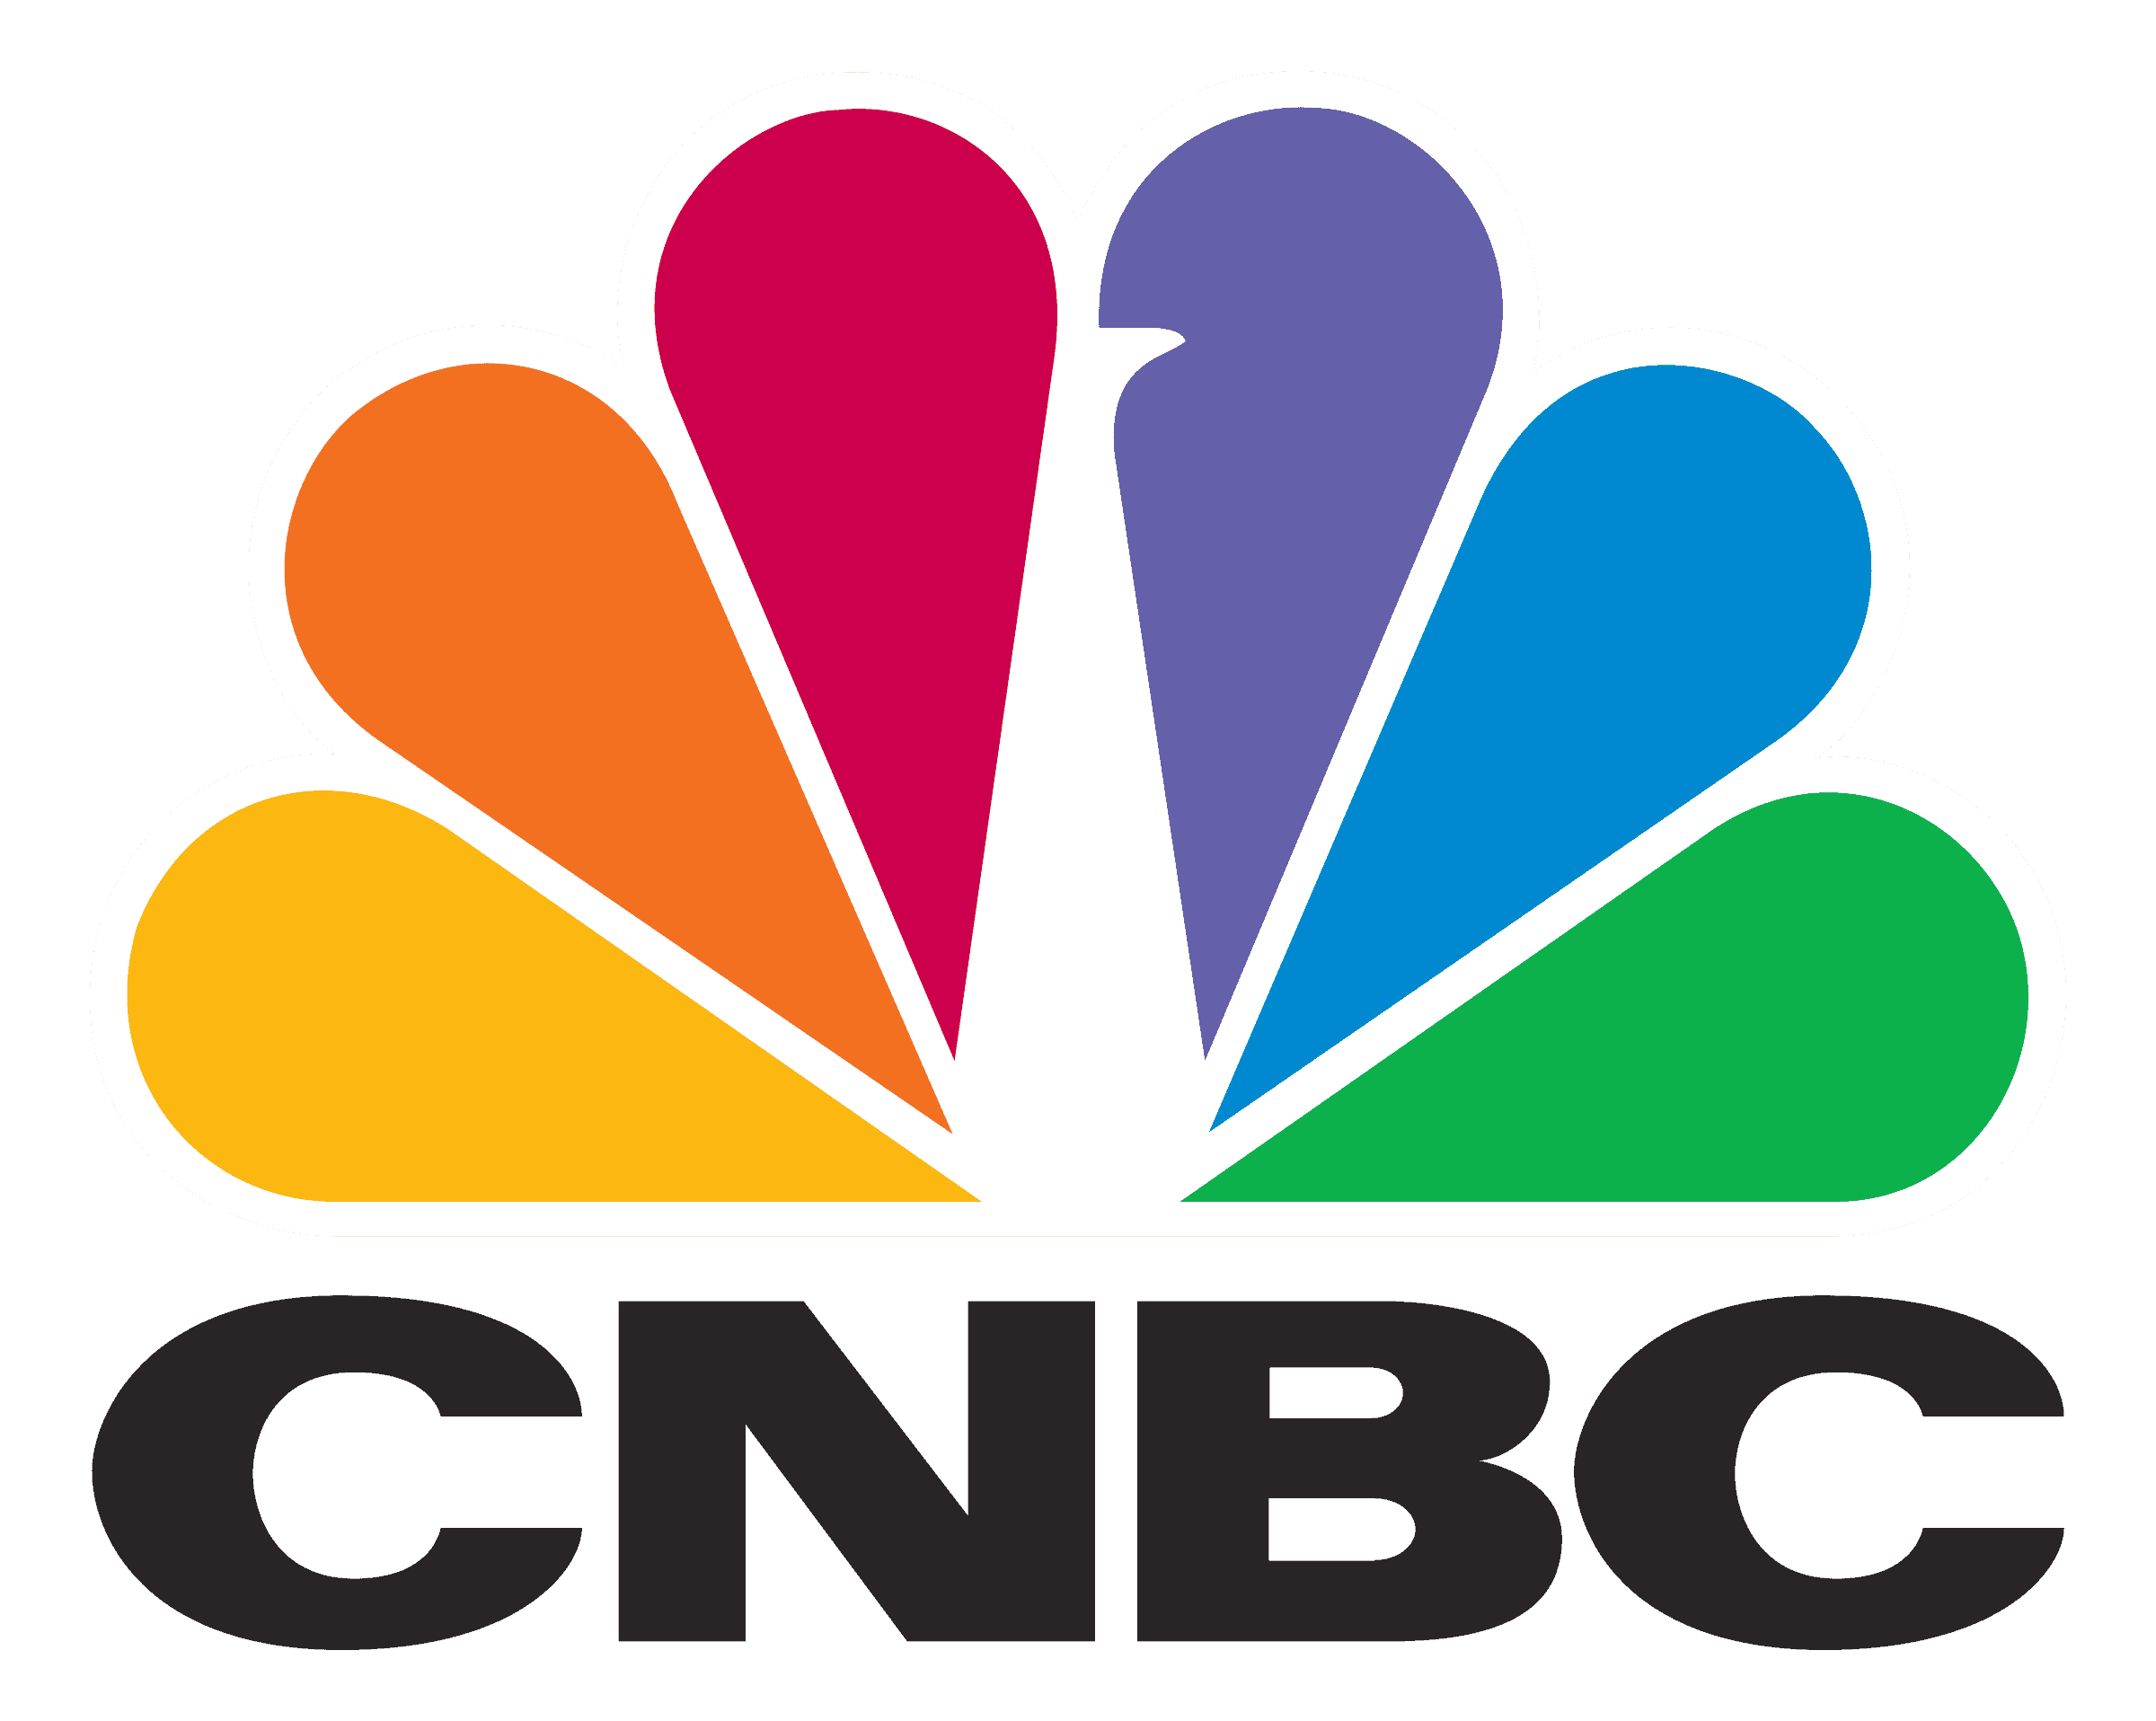 CNBC logo transparent version